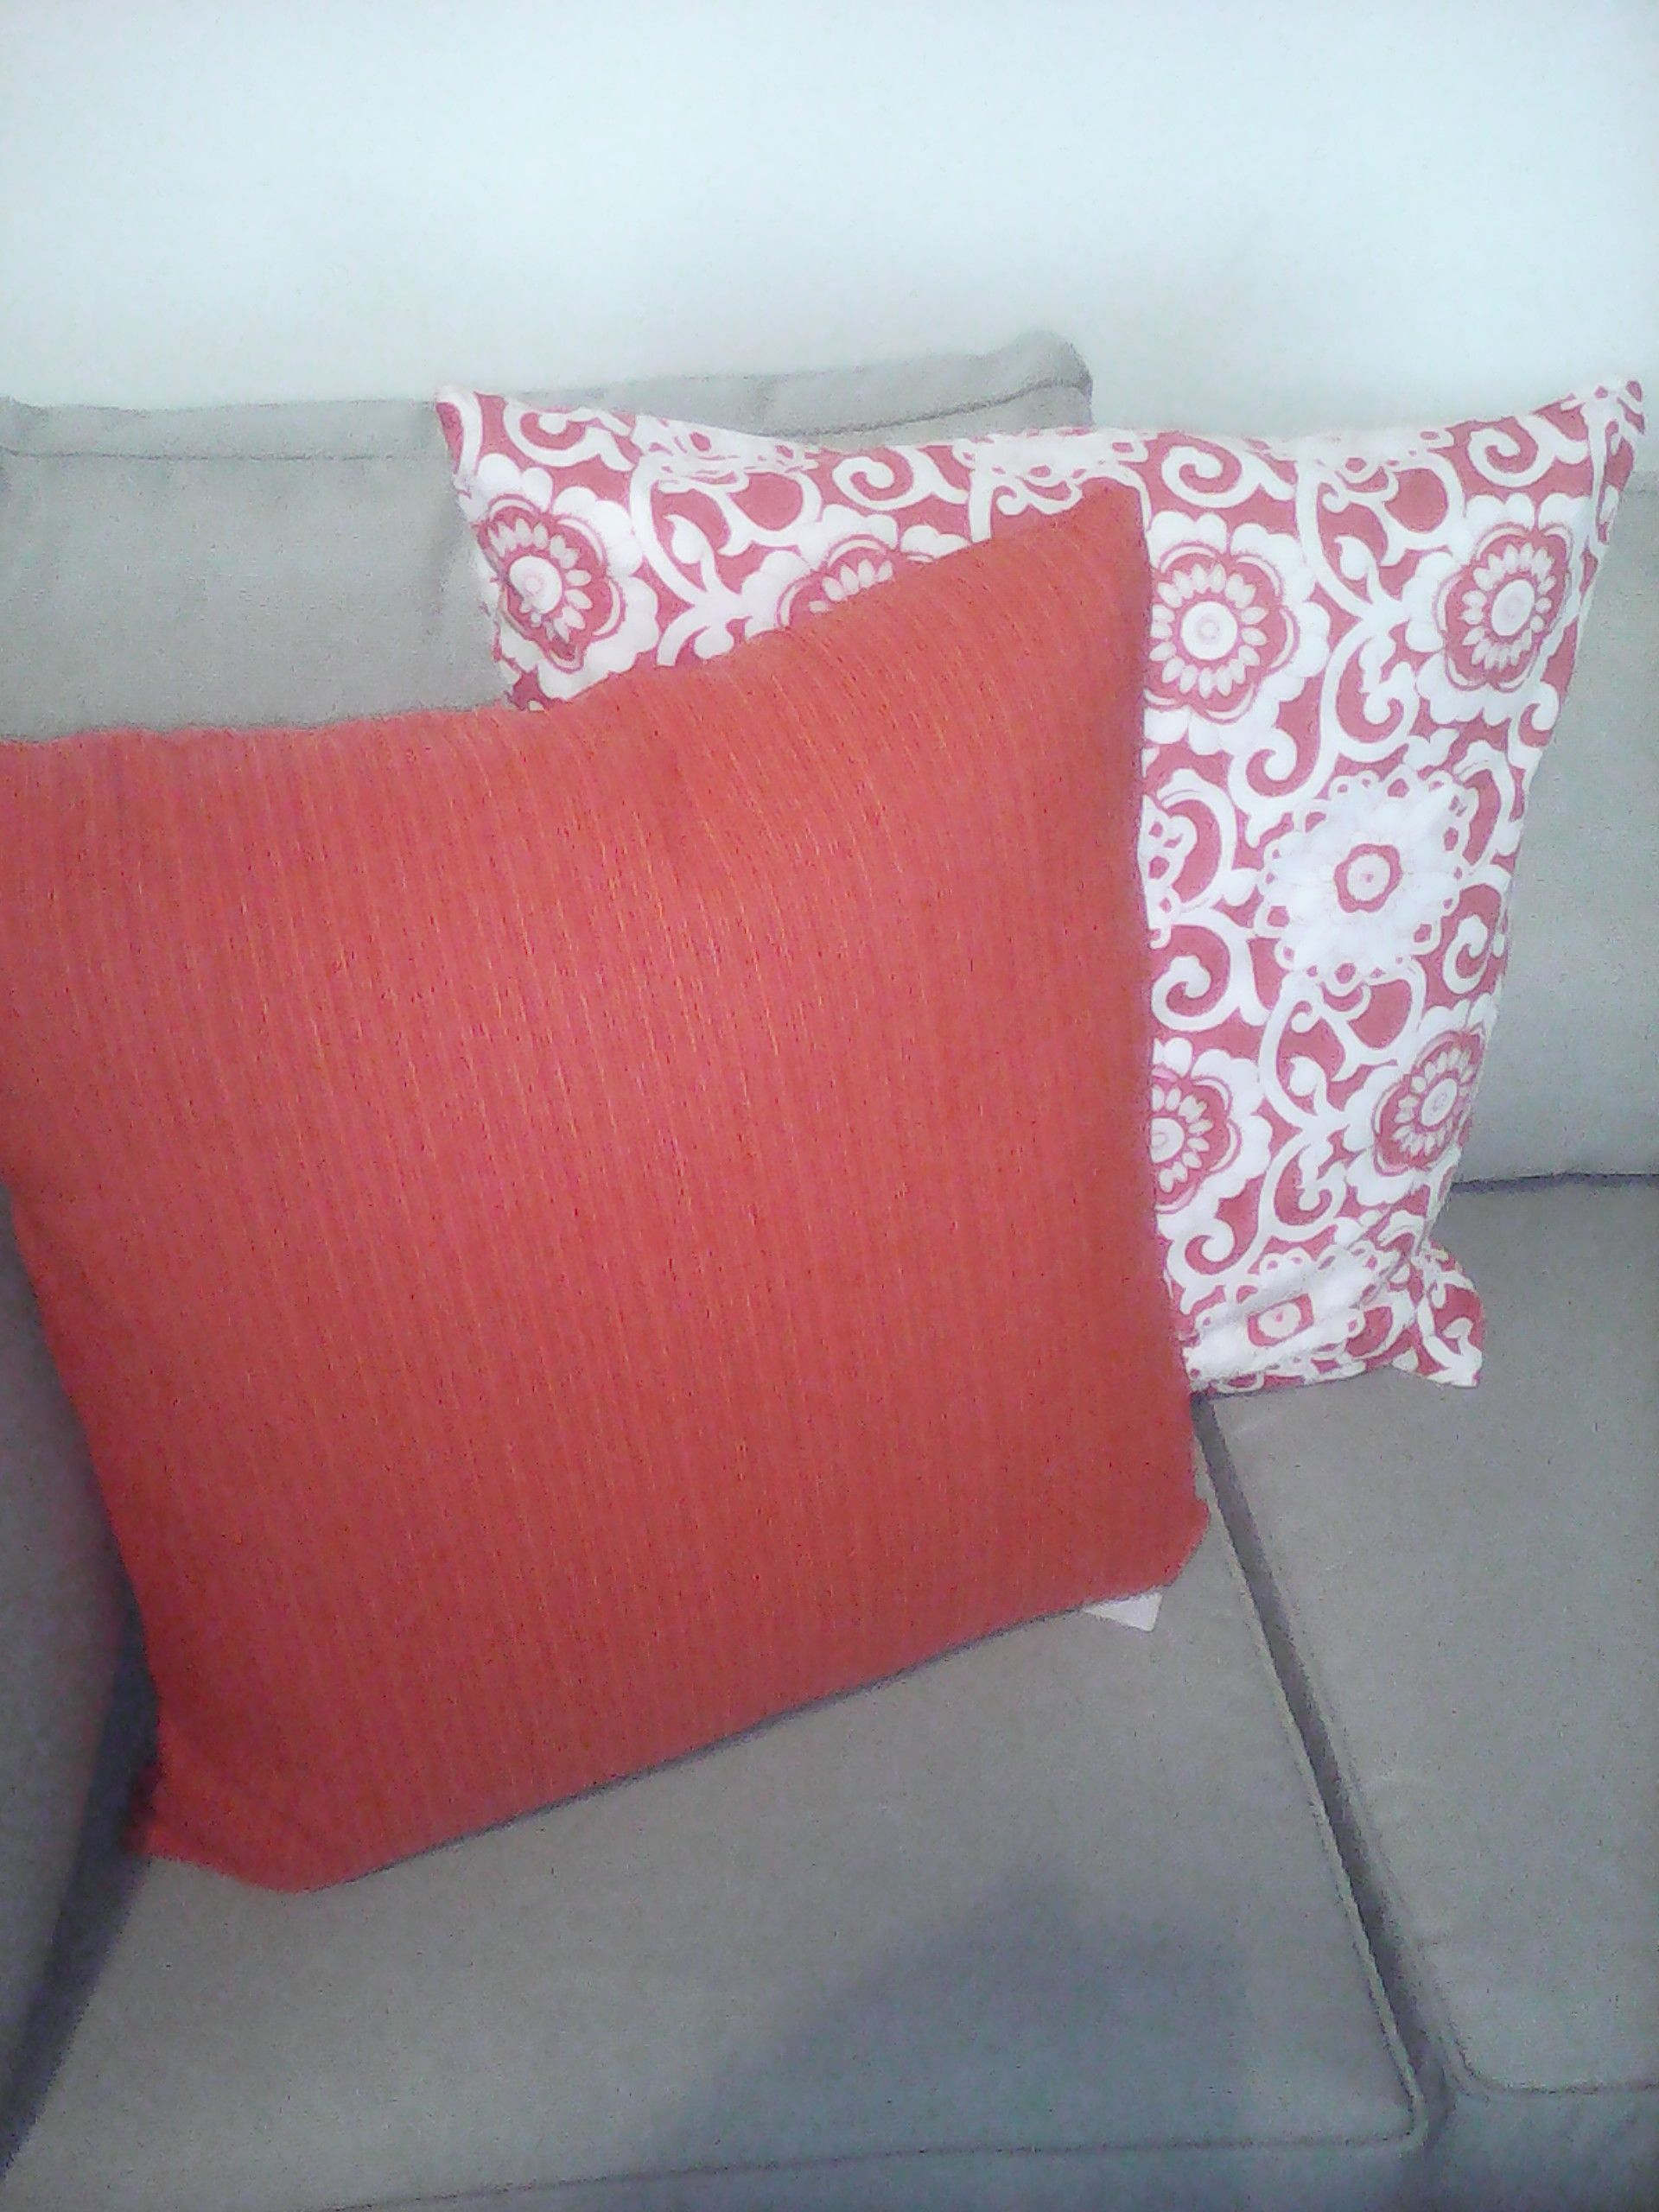 Sunbrella loose cushions and rattanfurniture covers from Maze